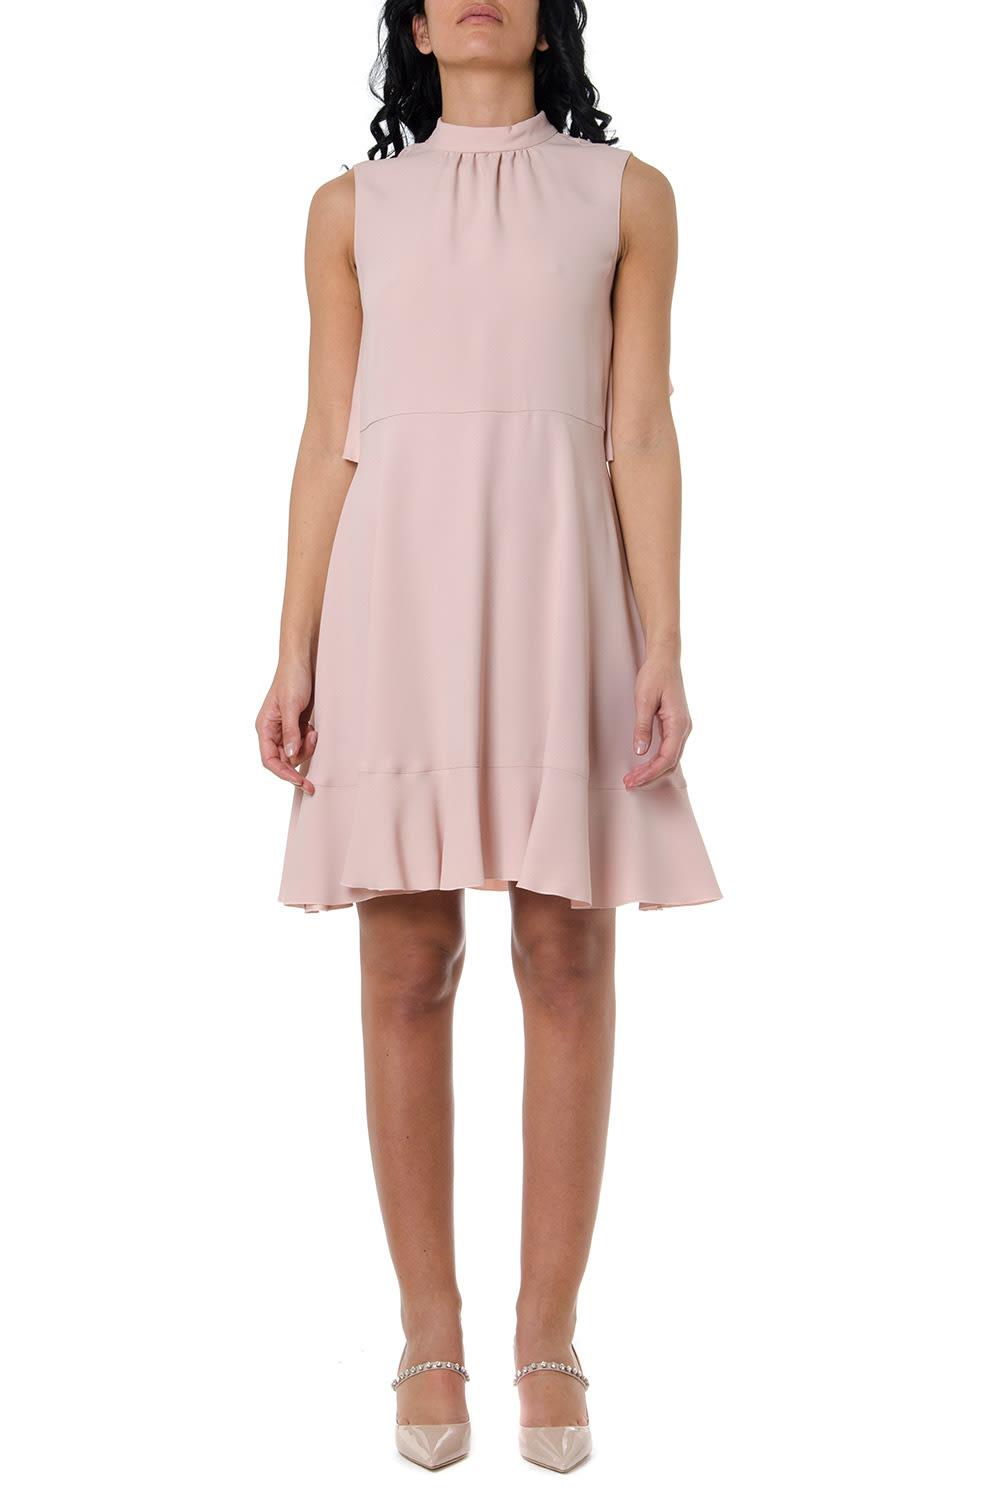 Buy RED Valentino Crepe Dress In Pale Pink Color online, shop RED Valentino with free shipping